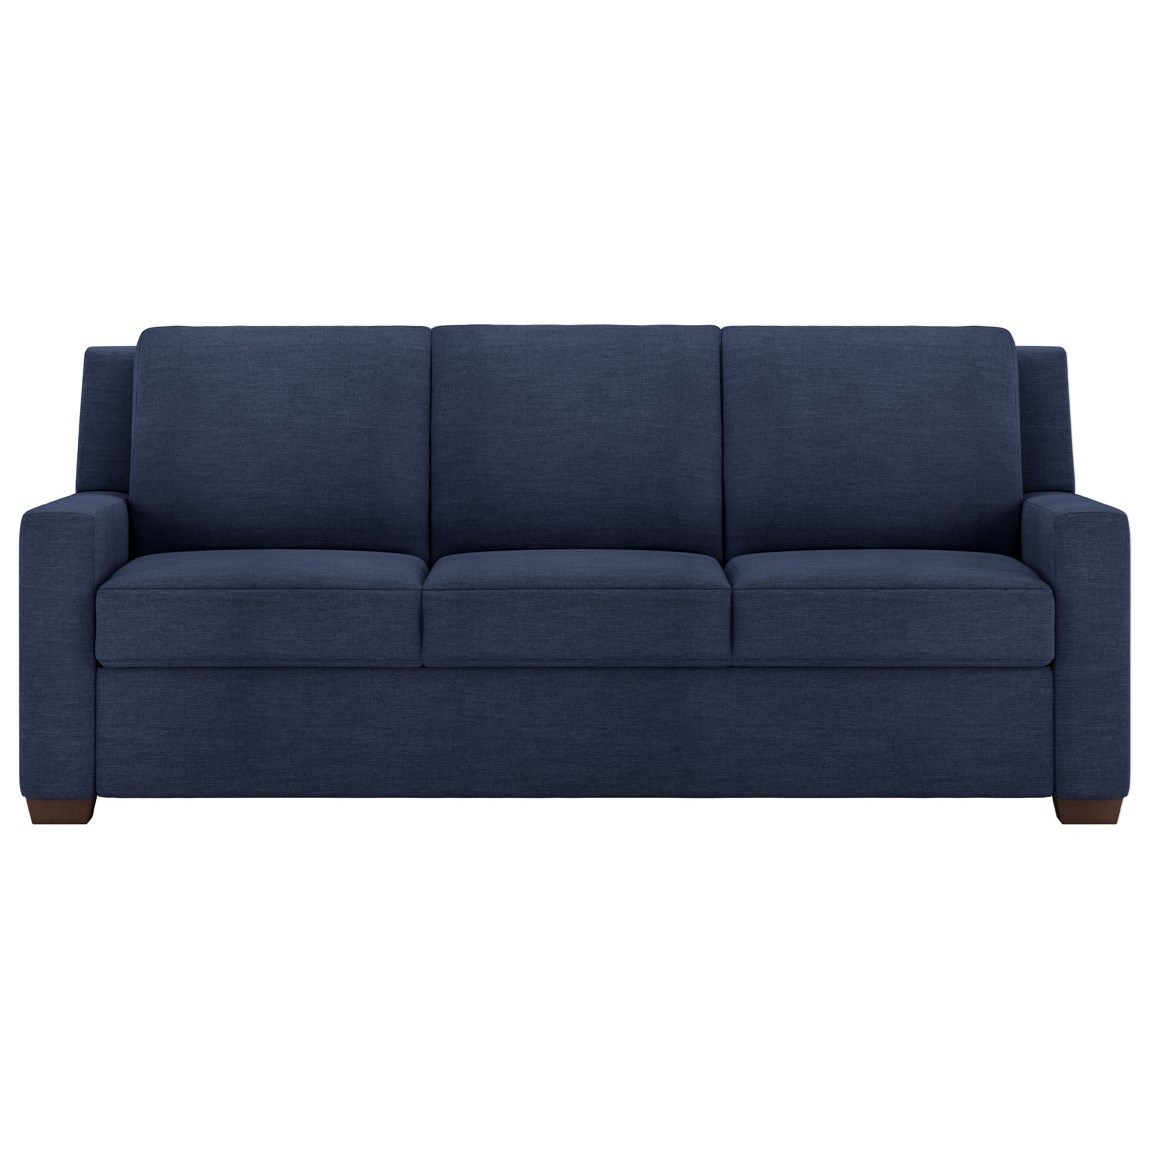 Lyons Queen Sleeper Sofa by American Leather at Baer's Furniture